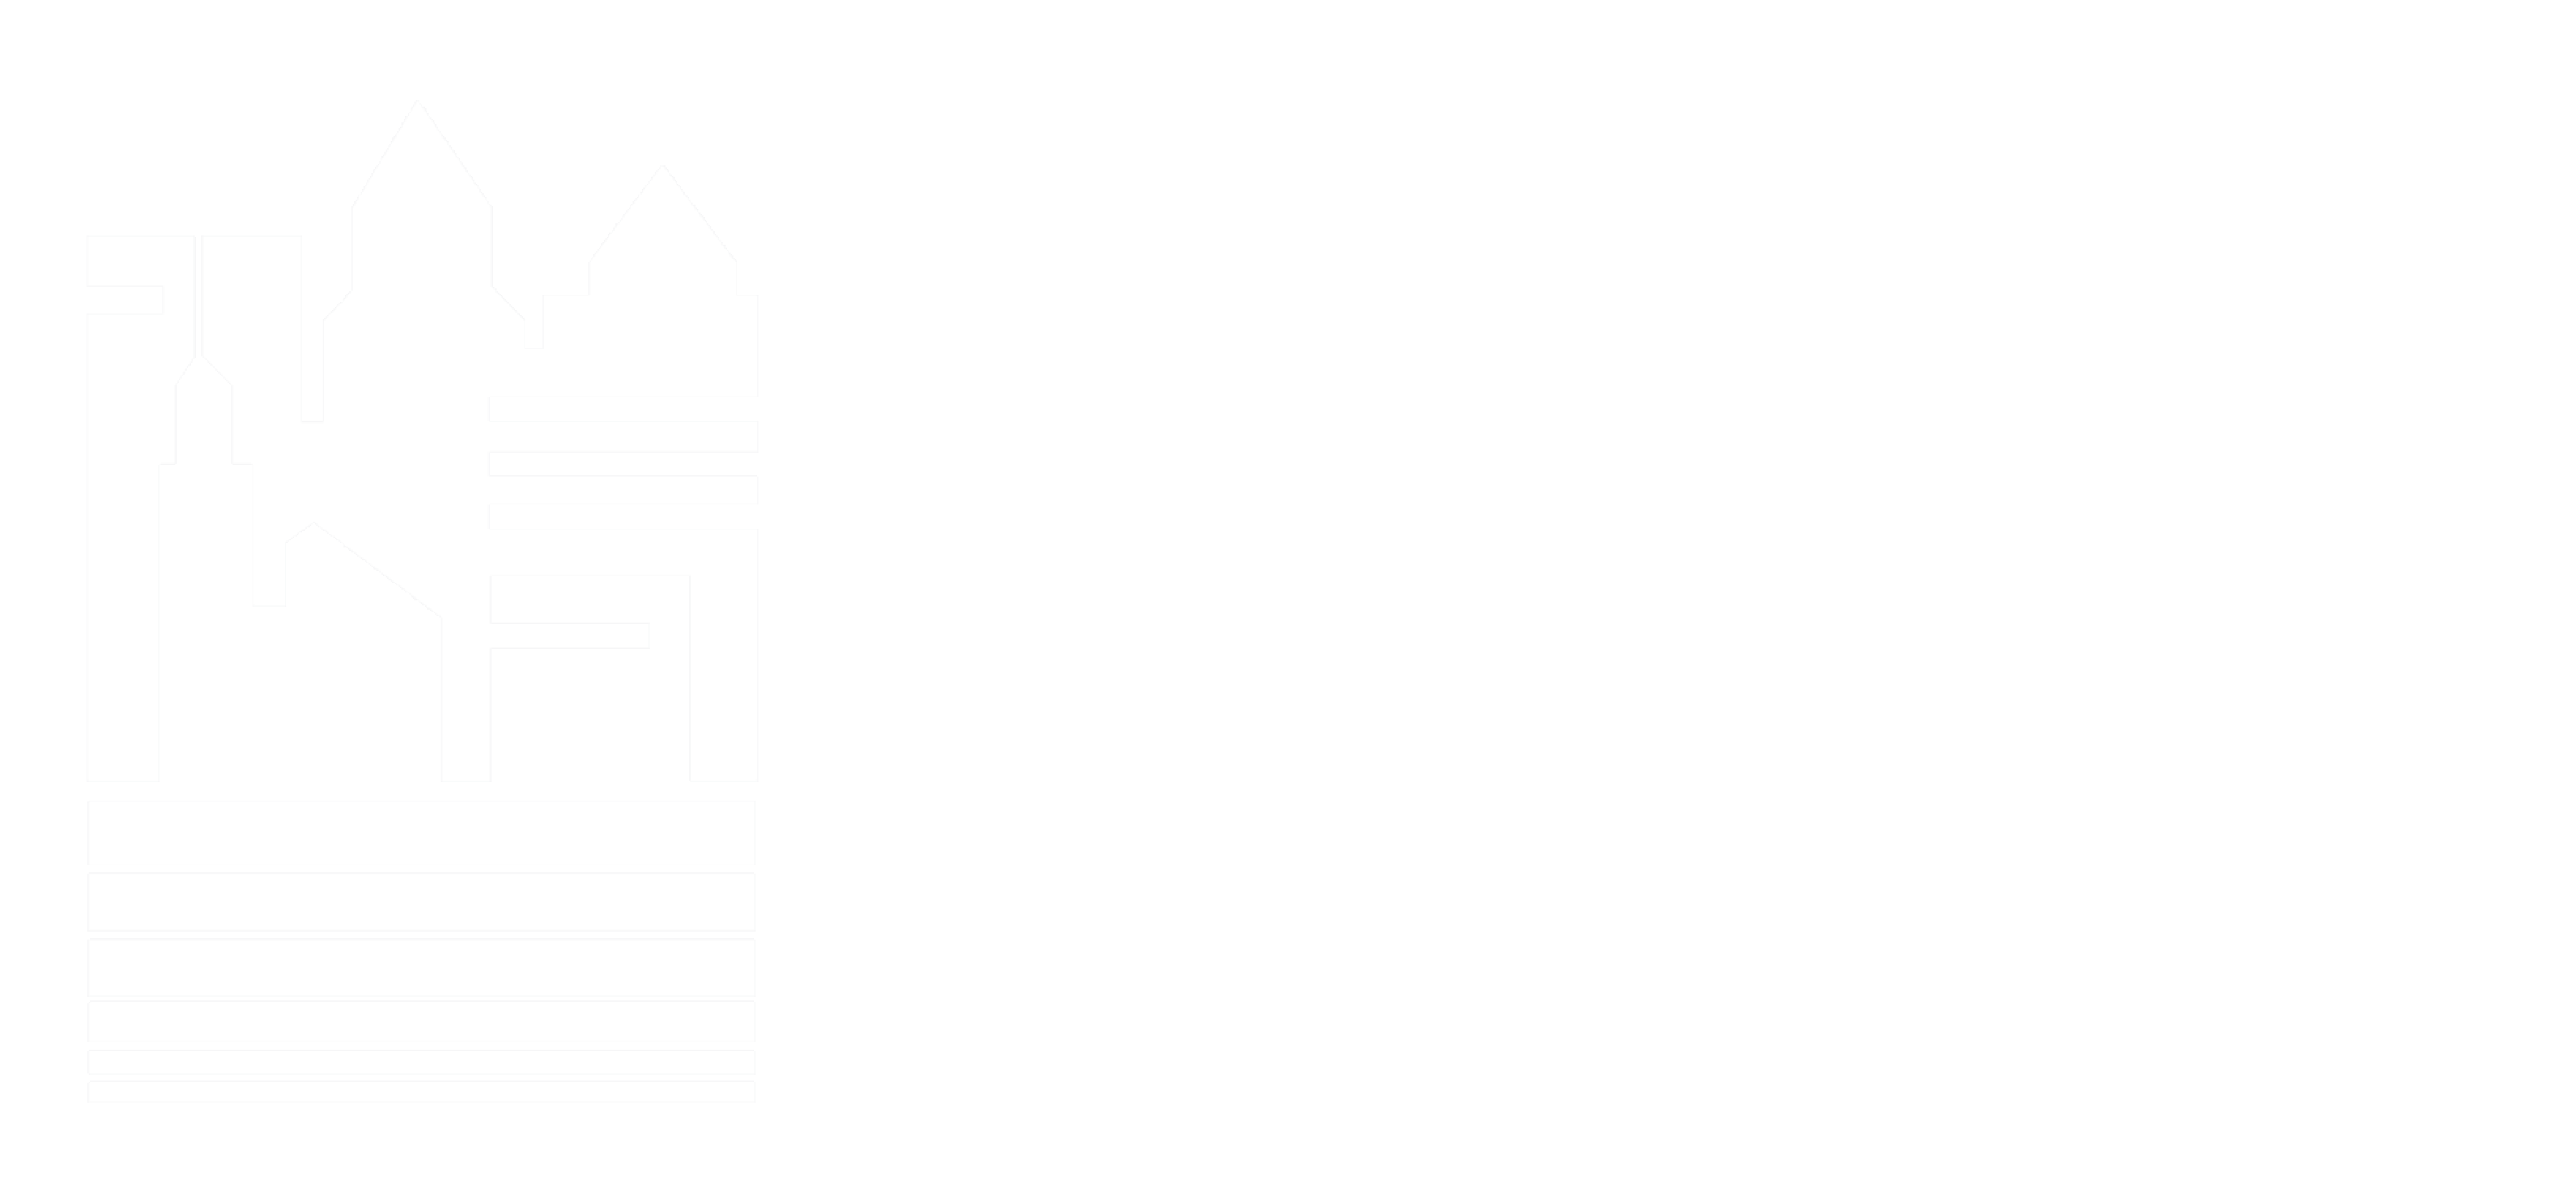 Builders Exchange of Michigan Logo - White Transparent